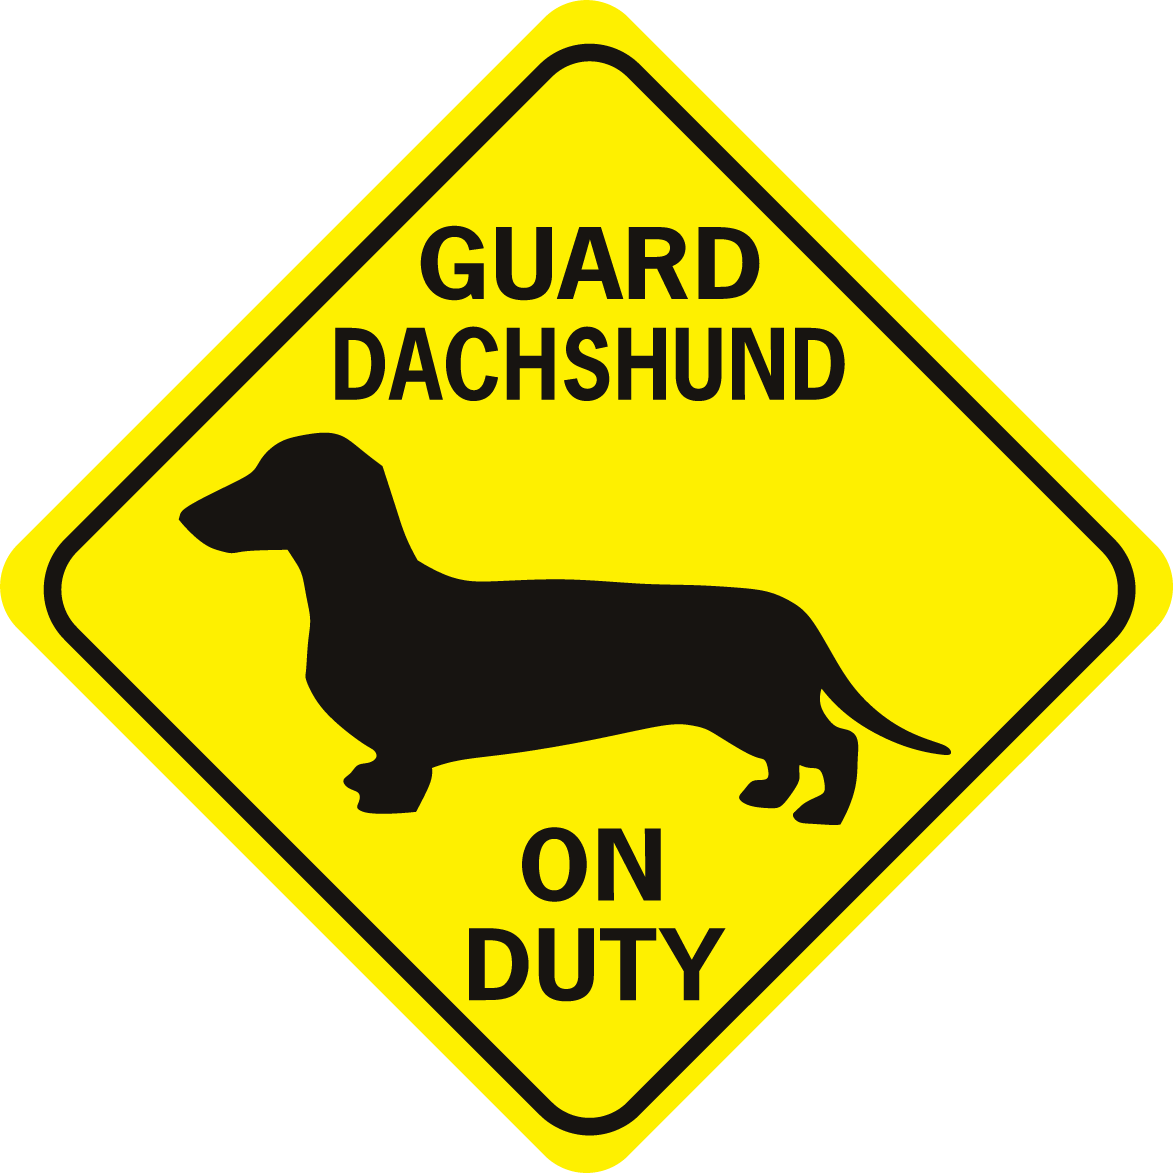 guard dachshund on duty